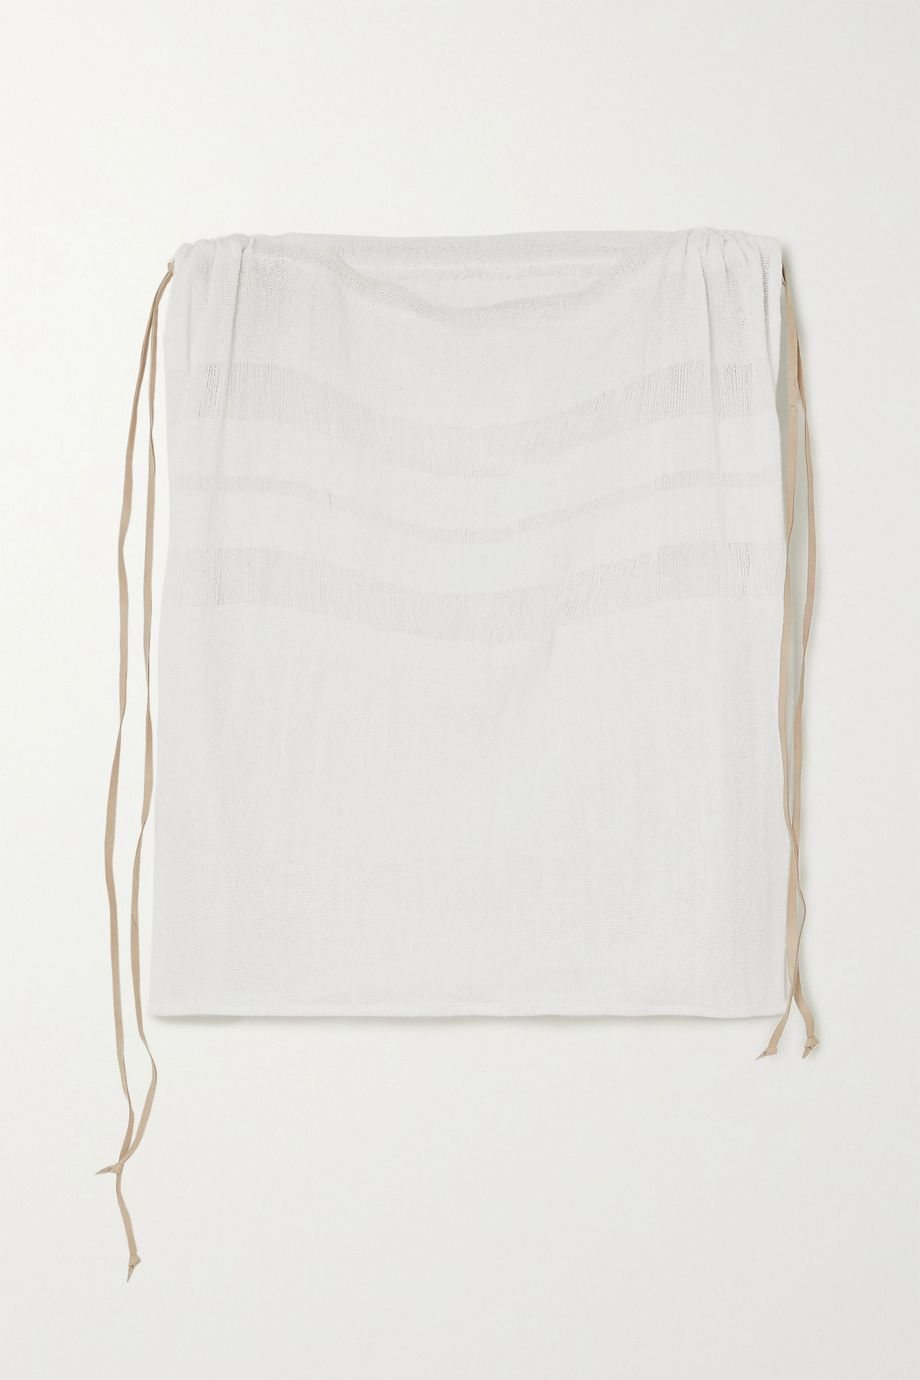 Caravana + NET SUSTAIN Chunox suede-trimmed cotton-gauze top